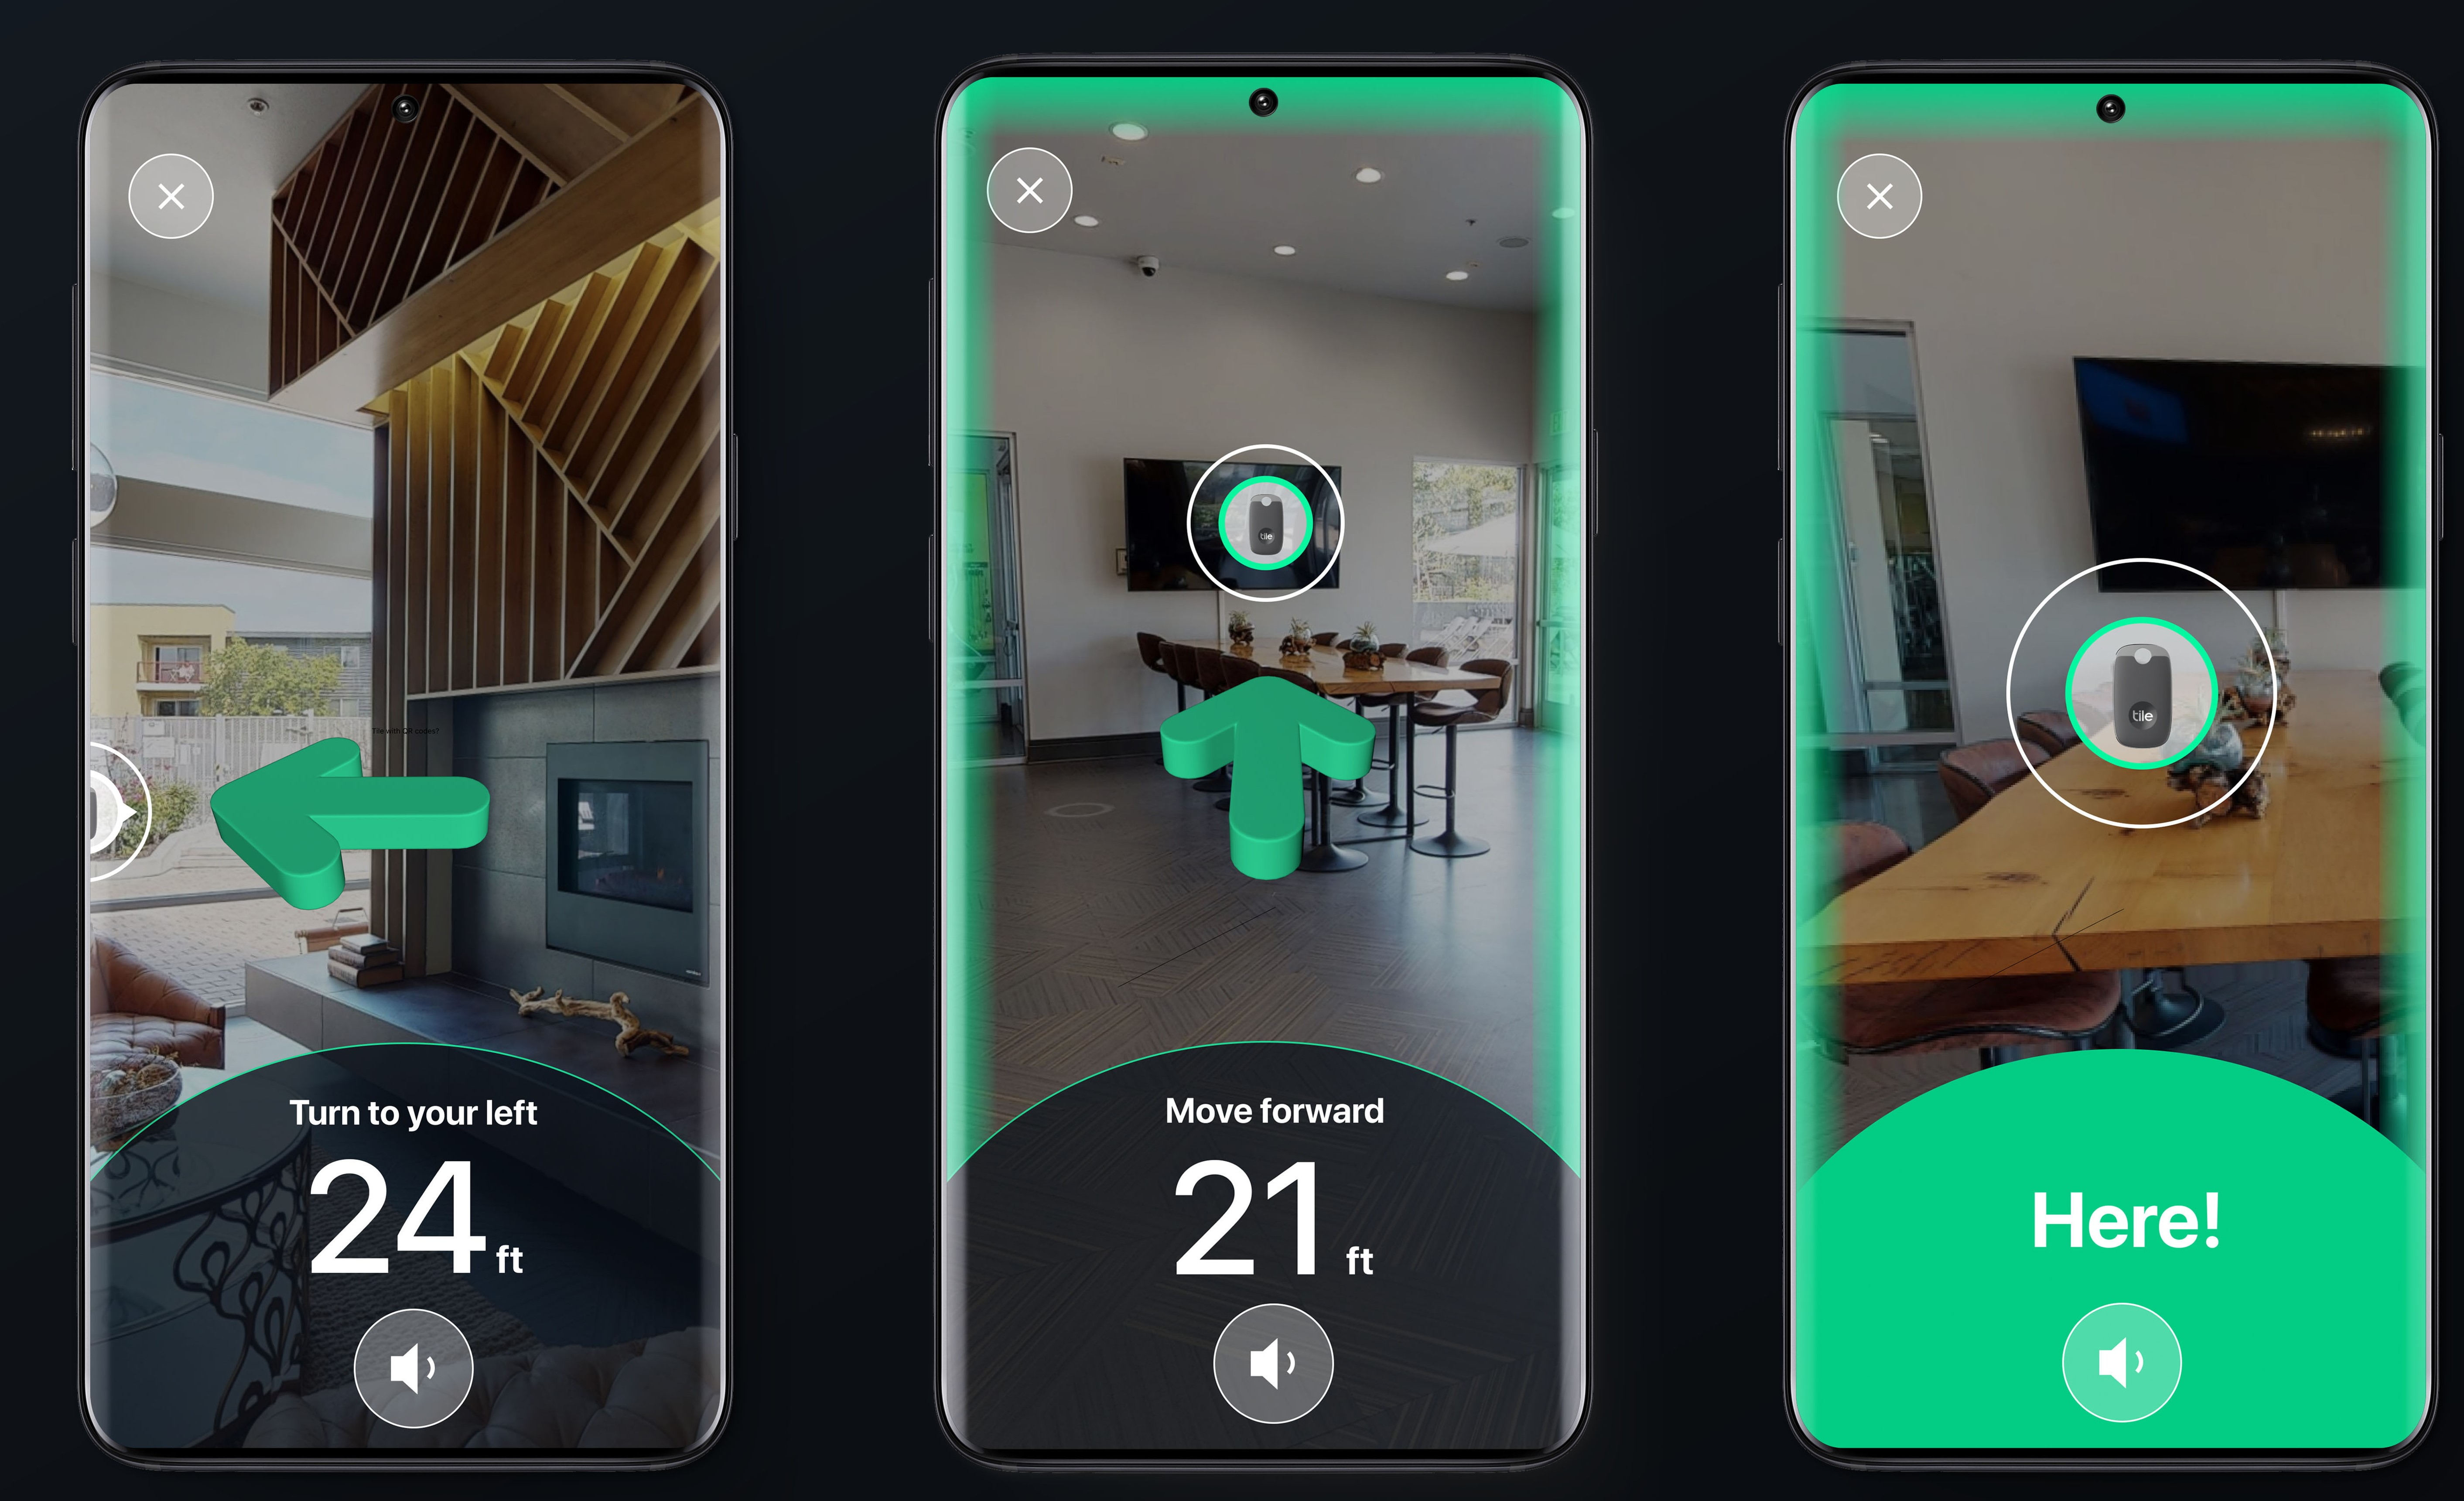 Tile Ultra's augmented reality experience for finding lost items. The screenshots offer visual indications of where to turn and move to in order to find the tracker.